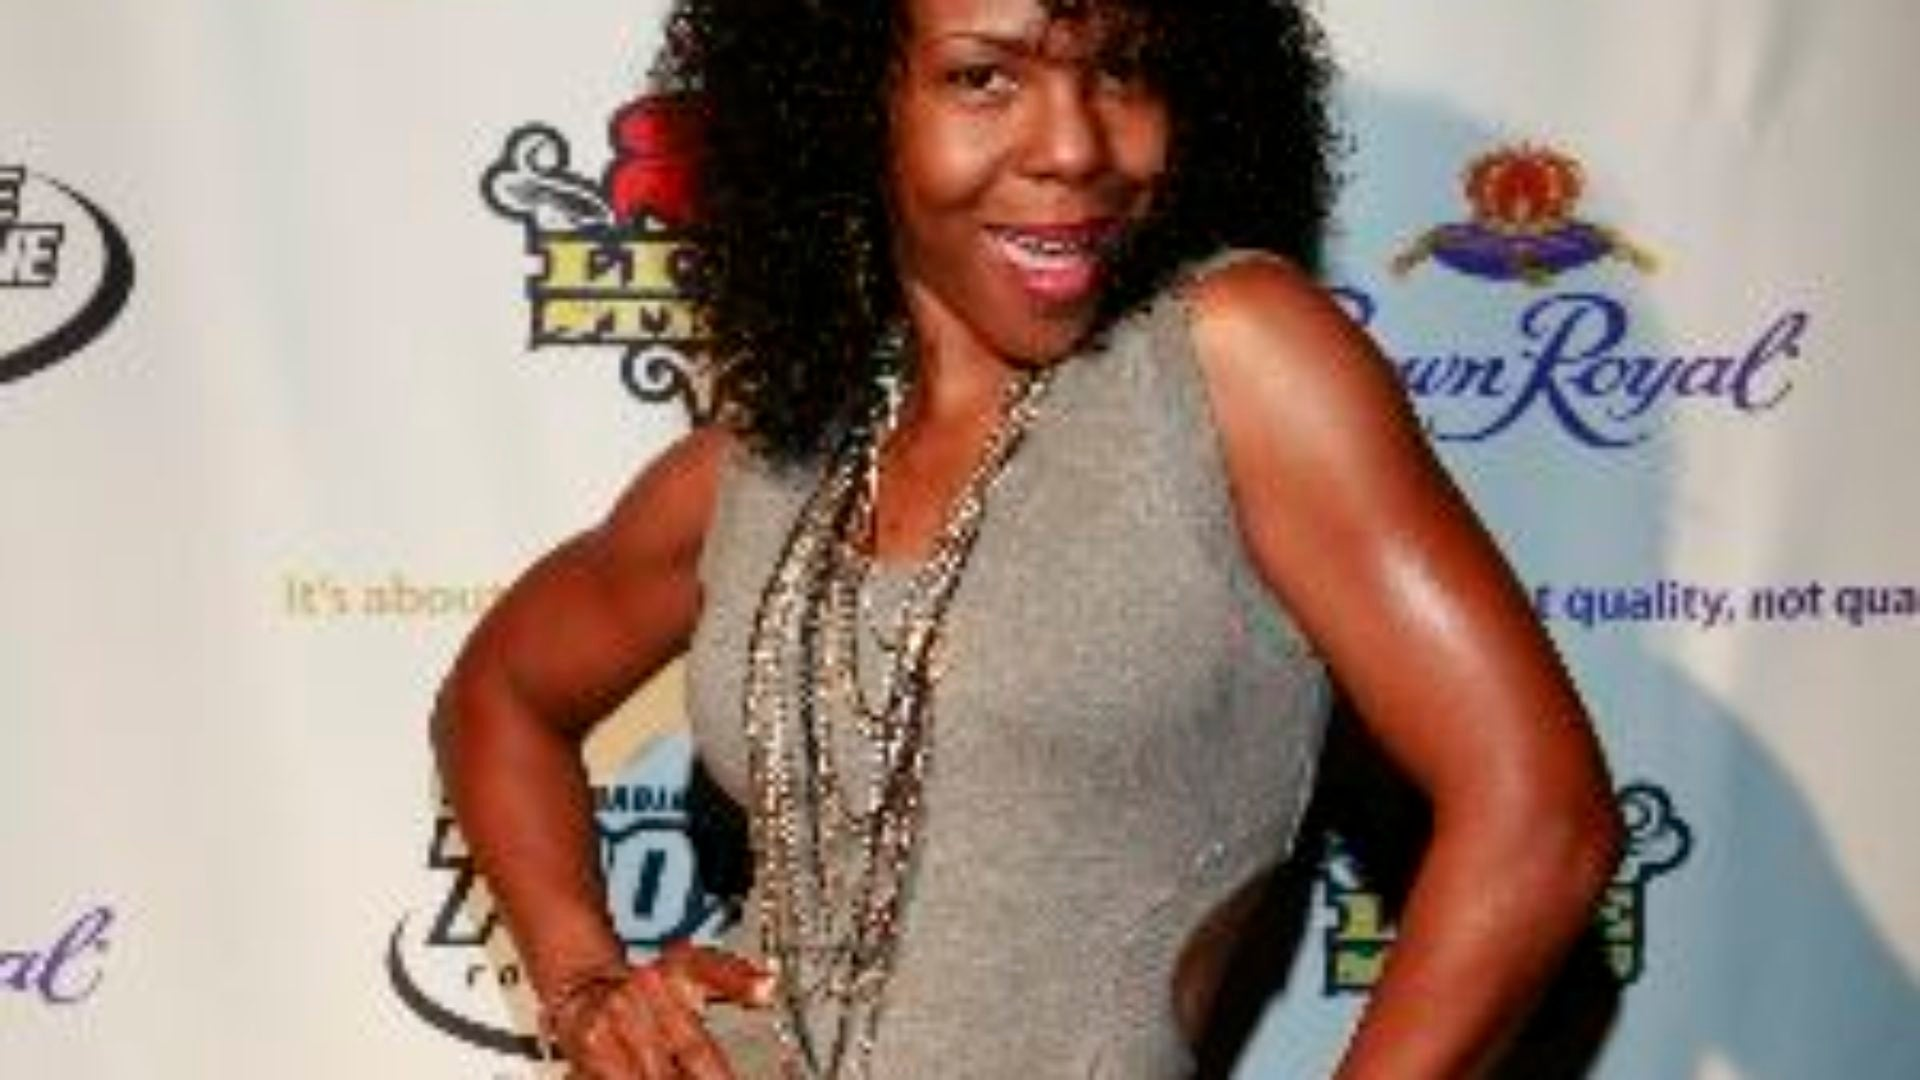 R. Kelly's Ex-Wife Andrea Kelly Opens Up